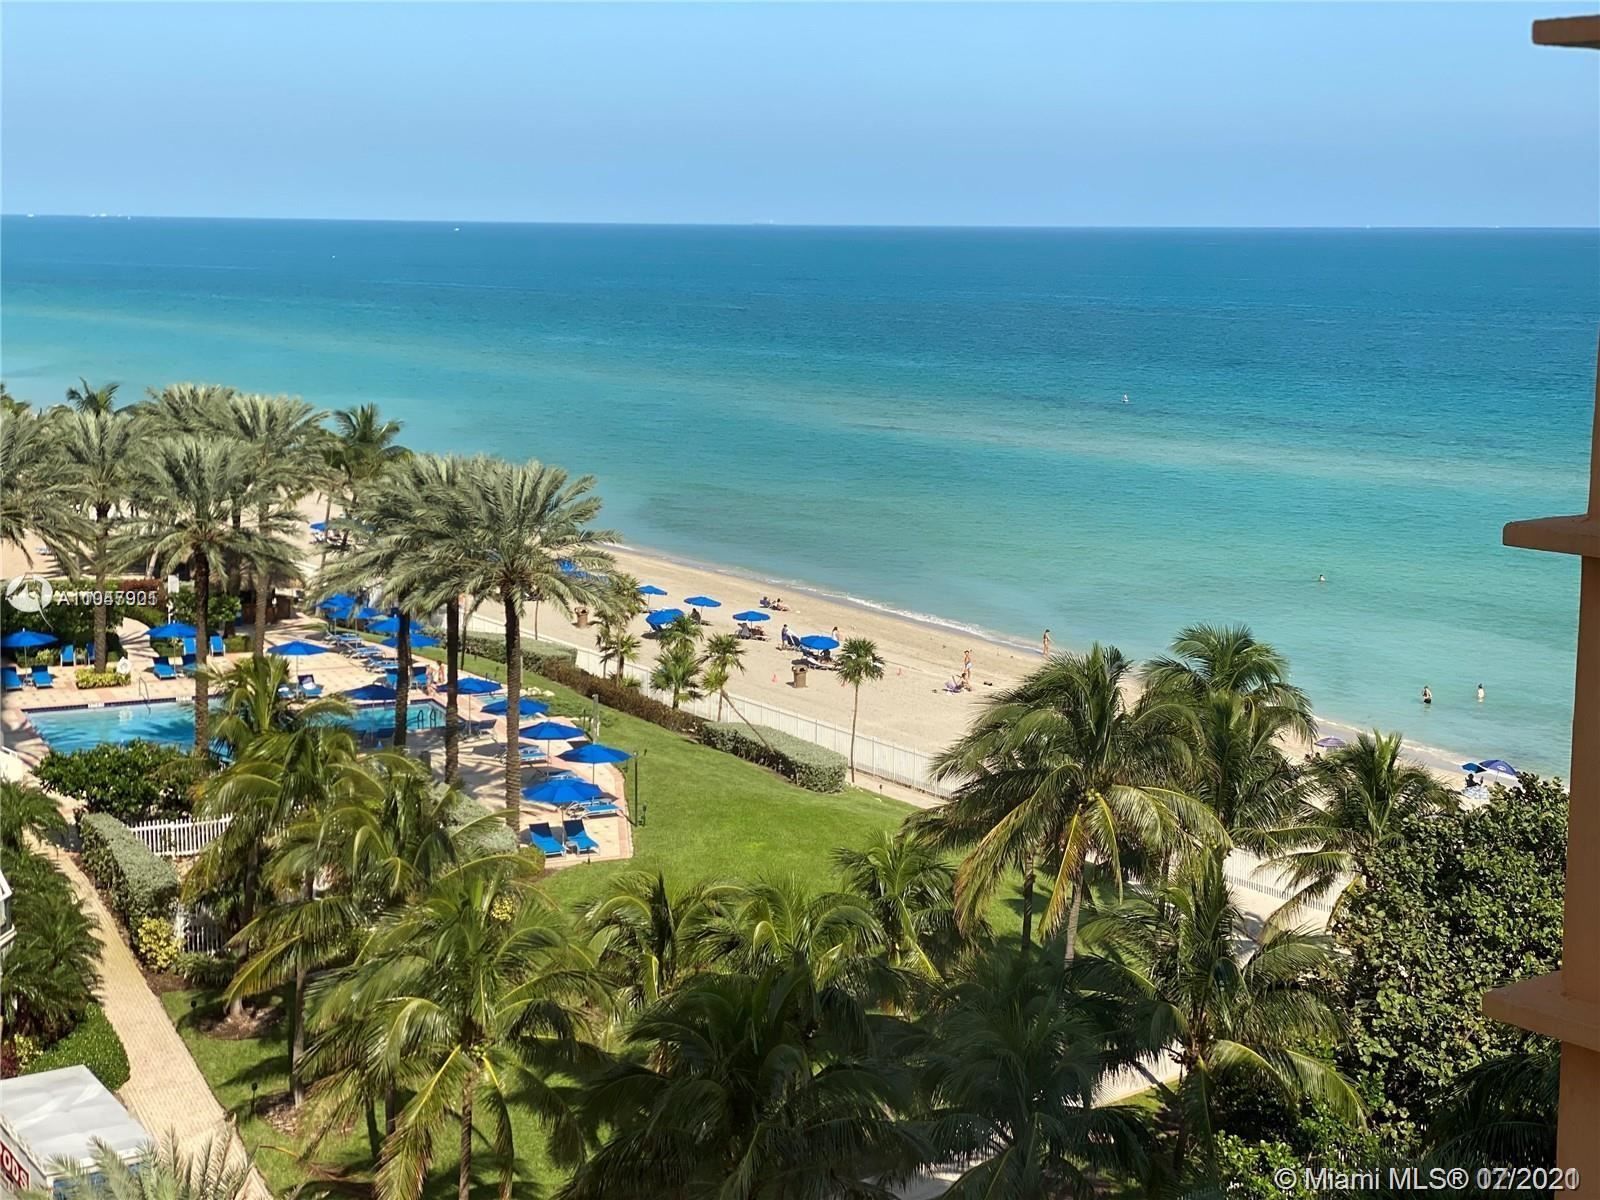 19201 Collins Ave #719, Sunny Isles, FL 33160 - #: A11047901